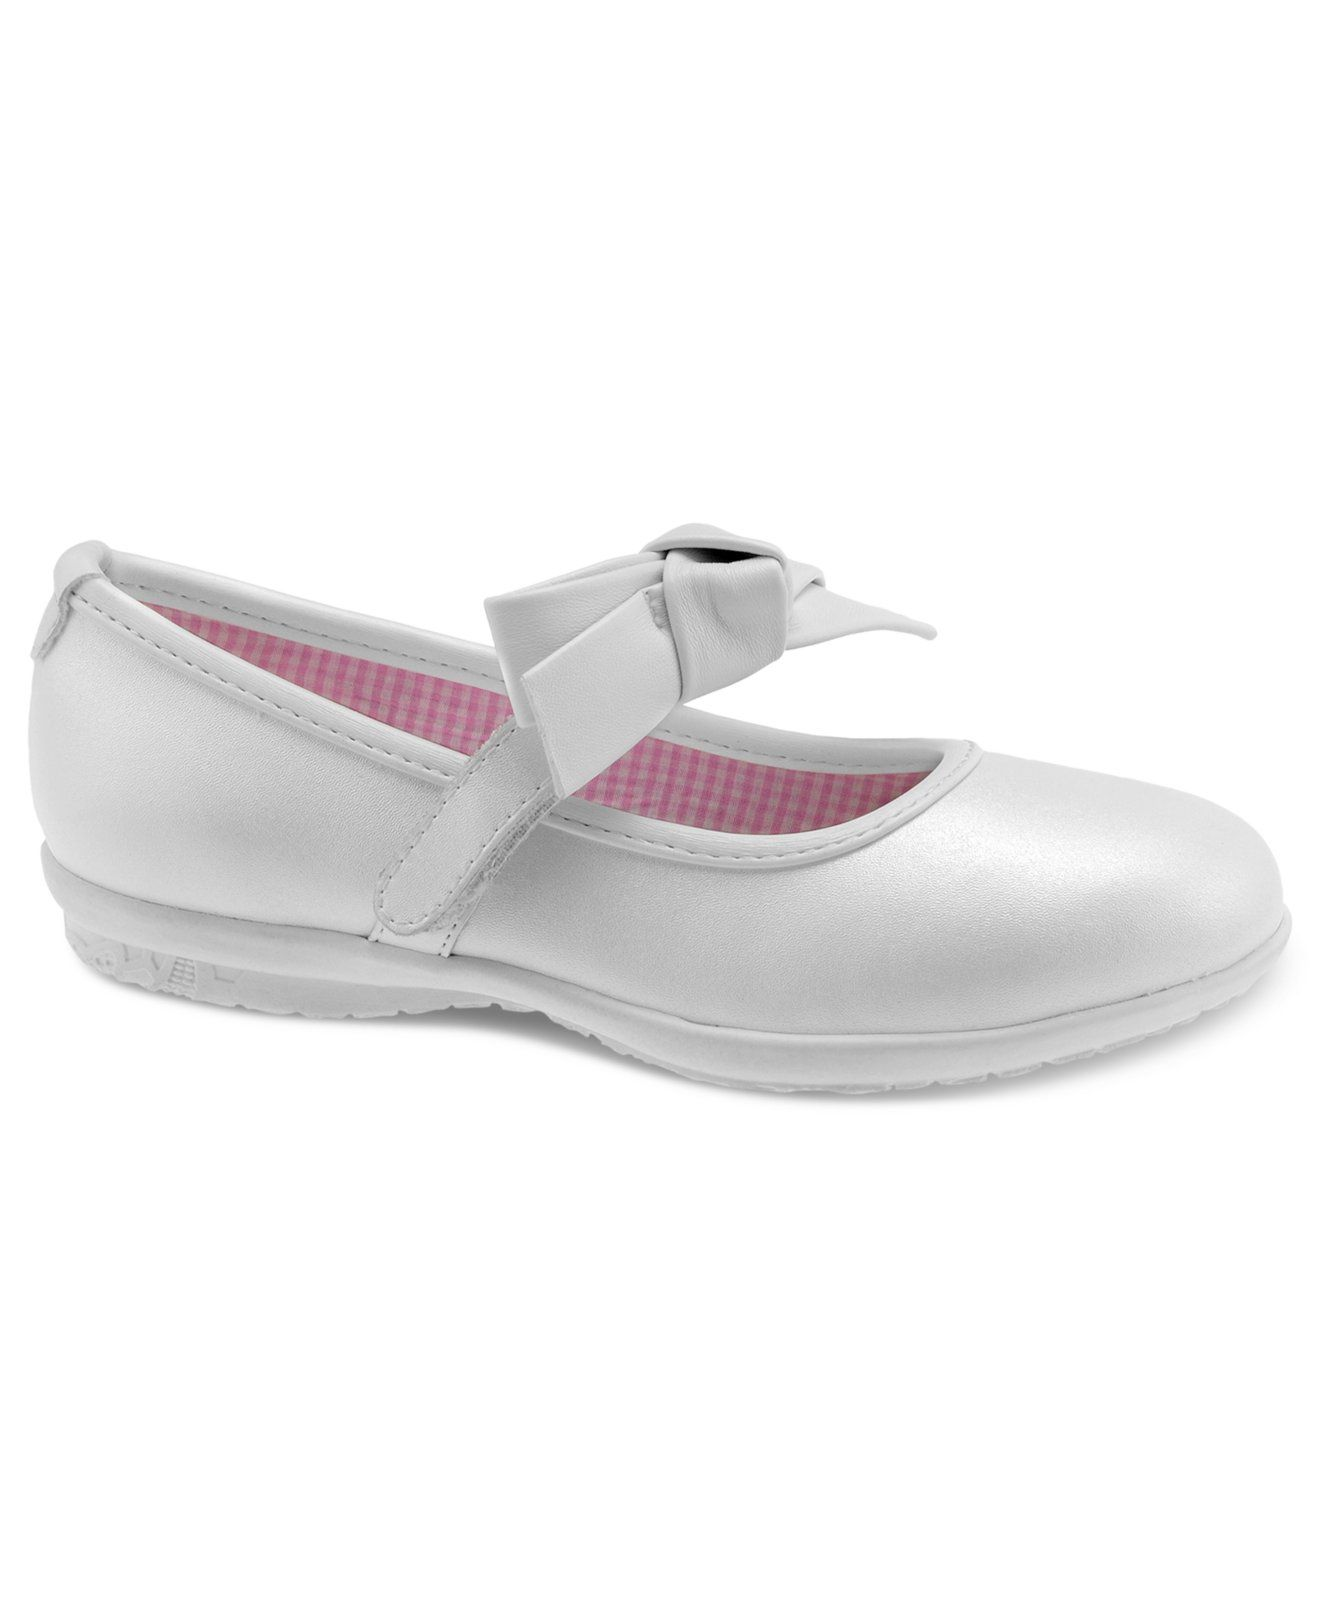 Hush Puppies Kids Shoes Girls Or Little Girls Bowtina Mary Janes Kids Kids Shoes Macy S Kids Shoes Girls Shoes Kids Hush Puppies